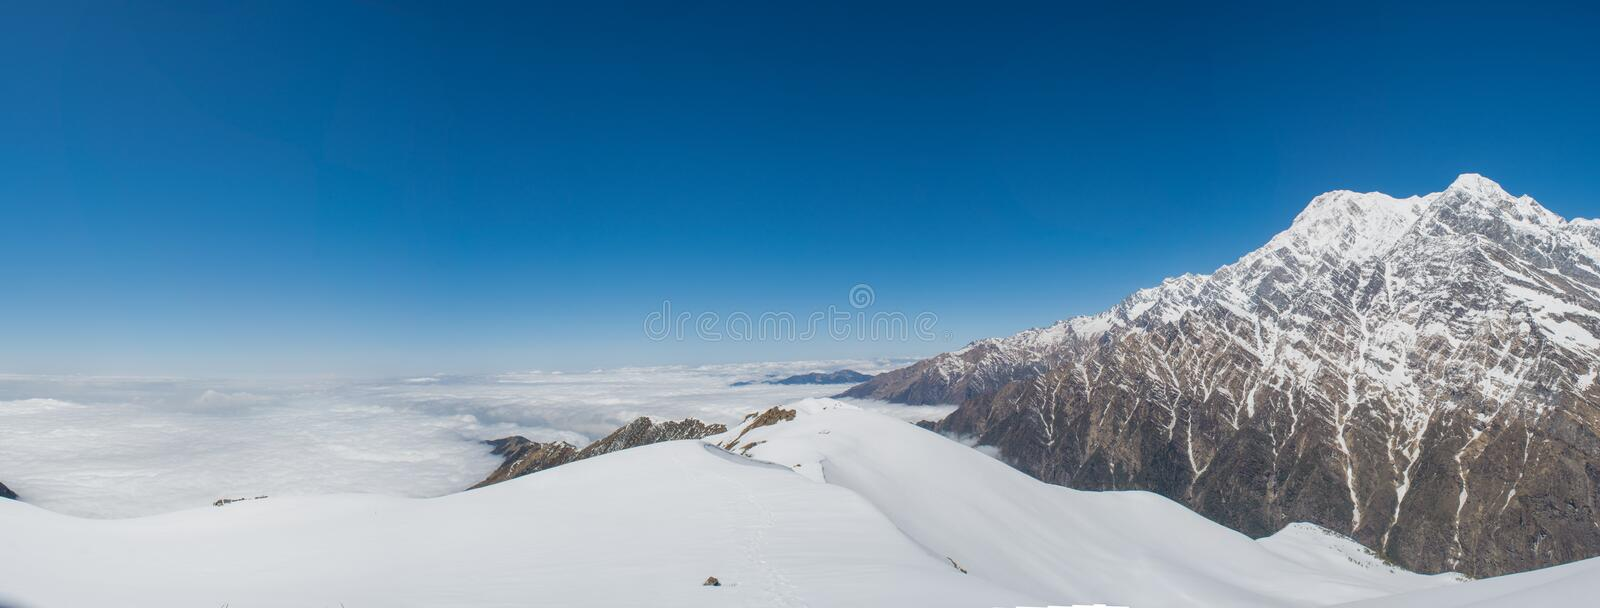 Beautiful snowy landscape panorama view of Himalaya mountains covered with snow at Mardi Himal trekking area. In Nepal royalty free stock photos